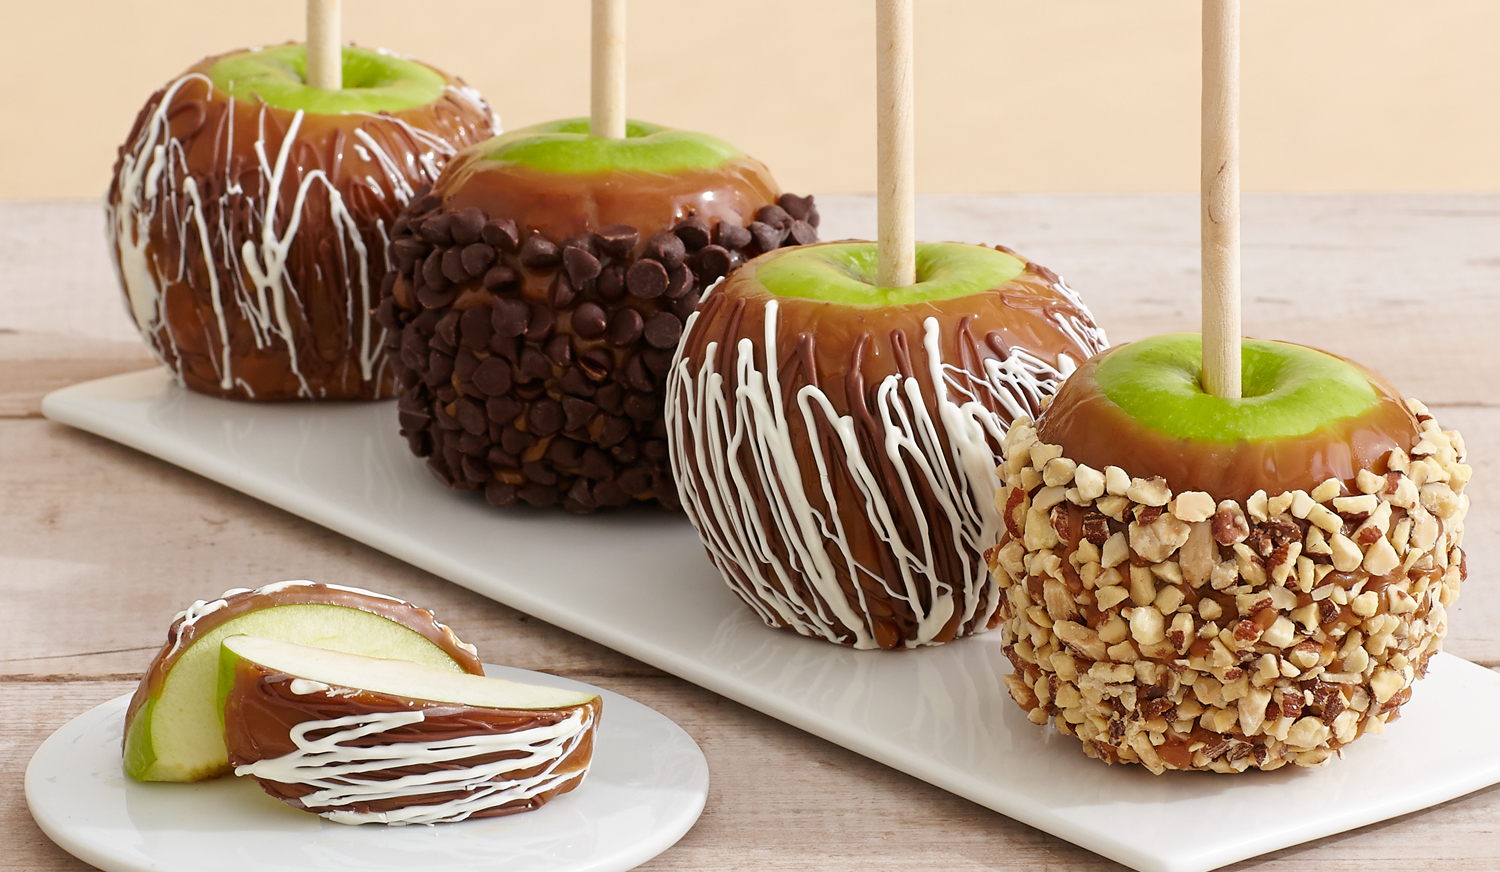 Caramel Apples (and Dark, Milk and White Chocolate, too)